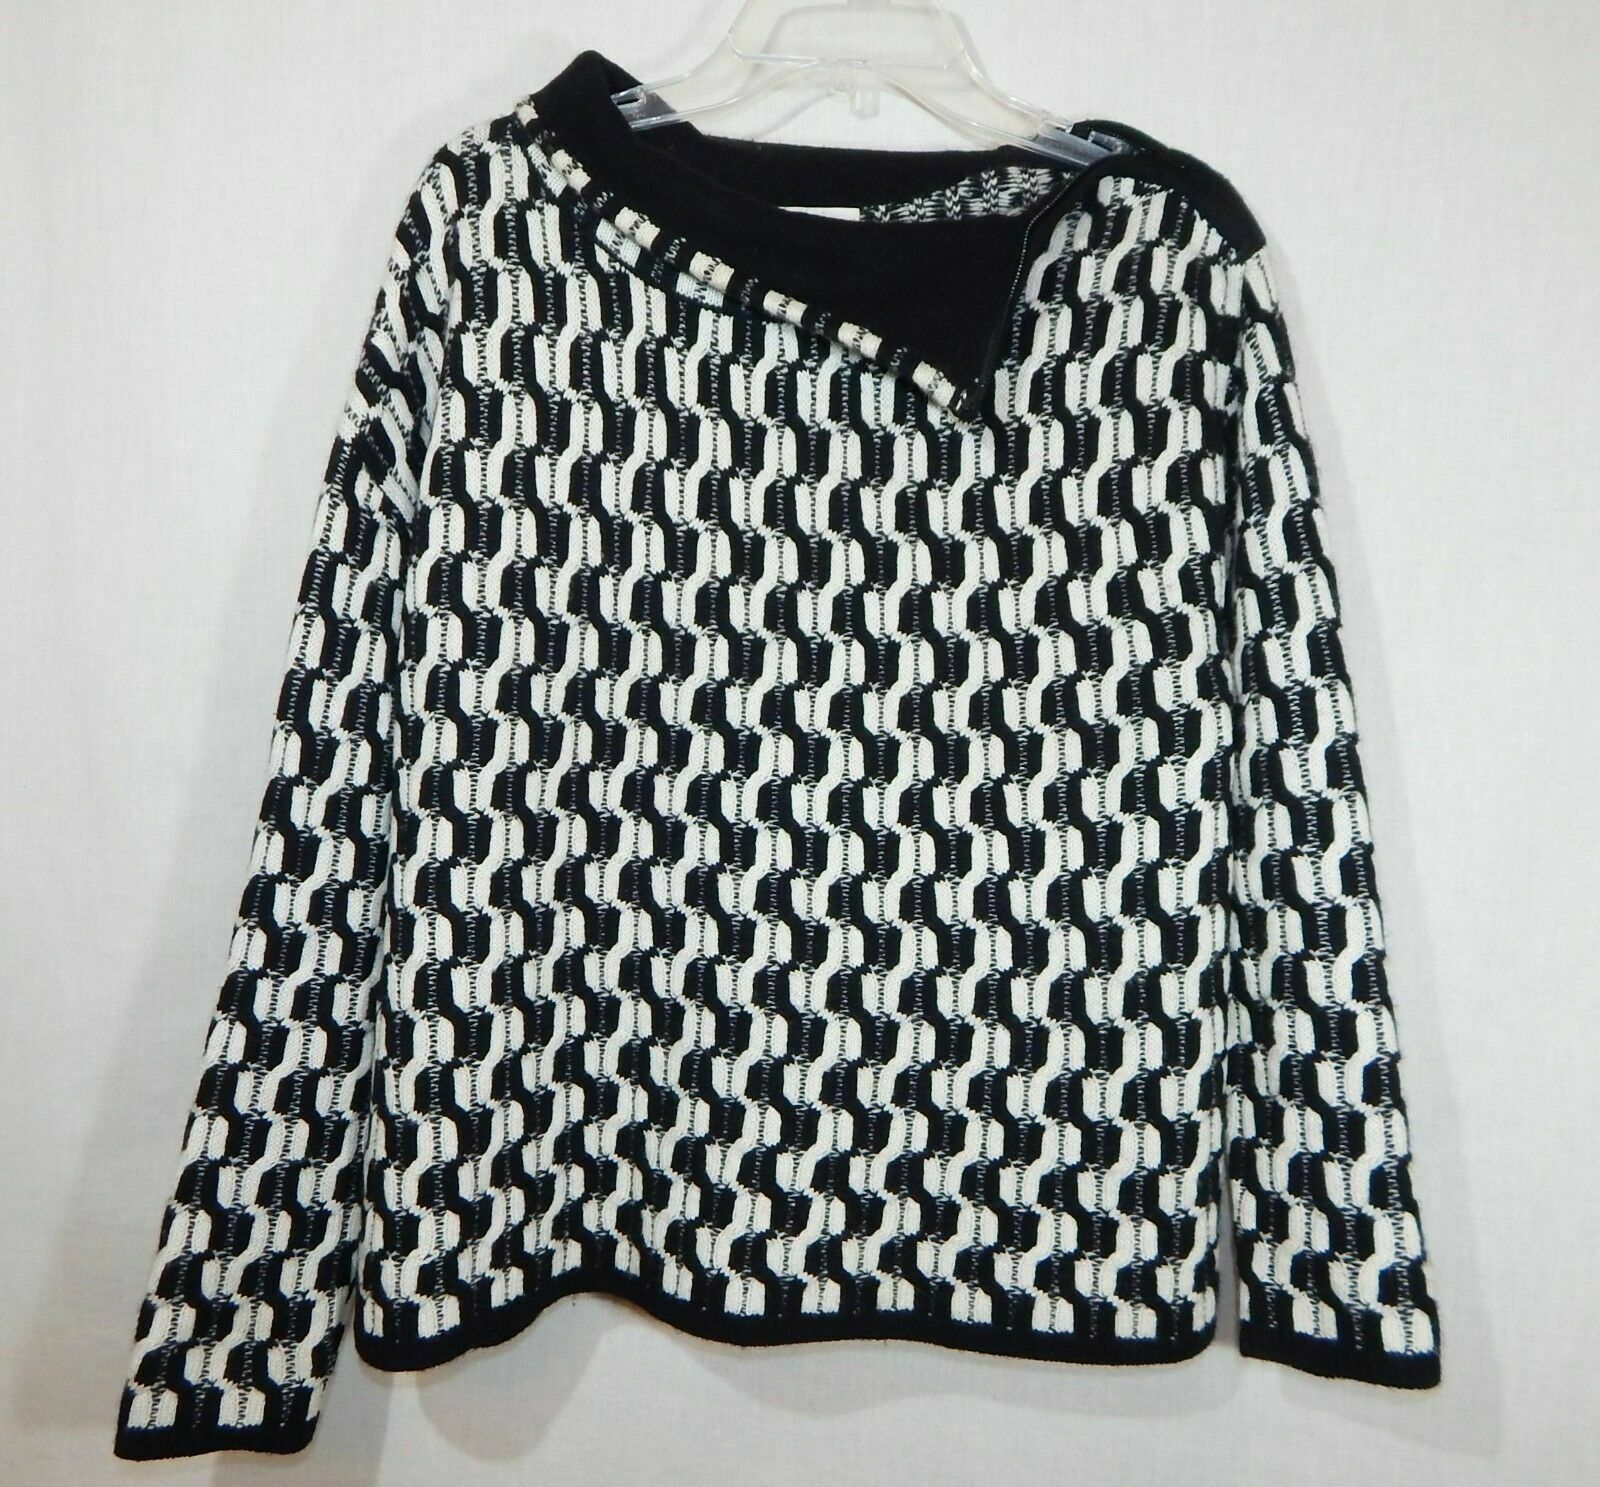 100% Cashmere NORDSTROM COLLECTION Black White Do… - image 9